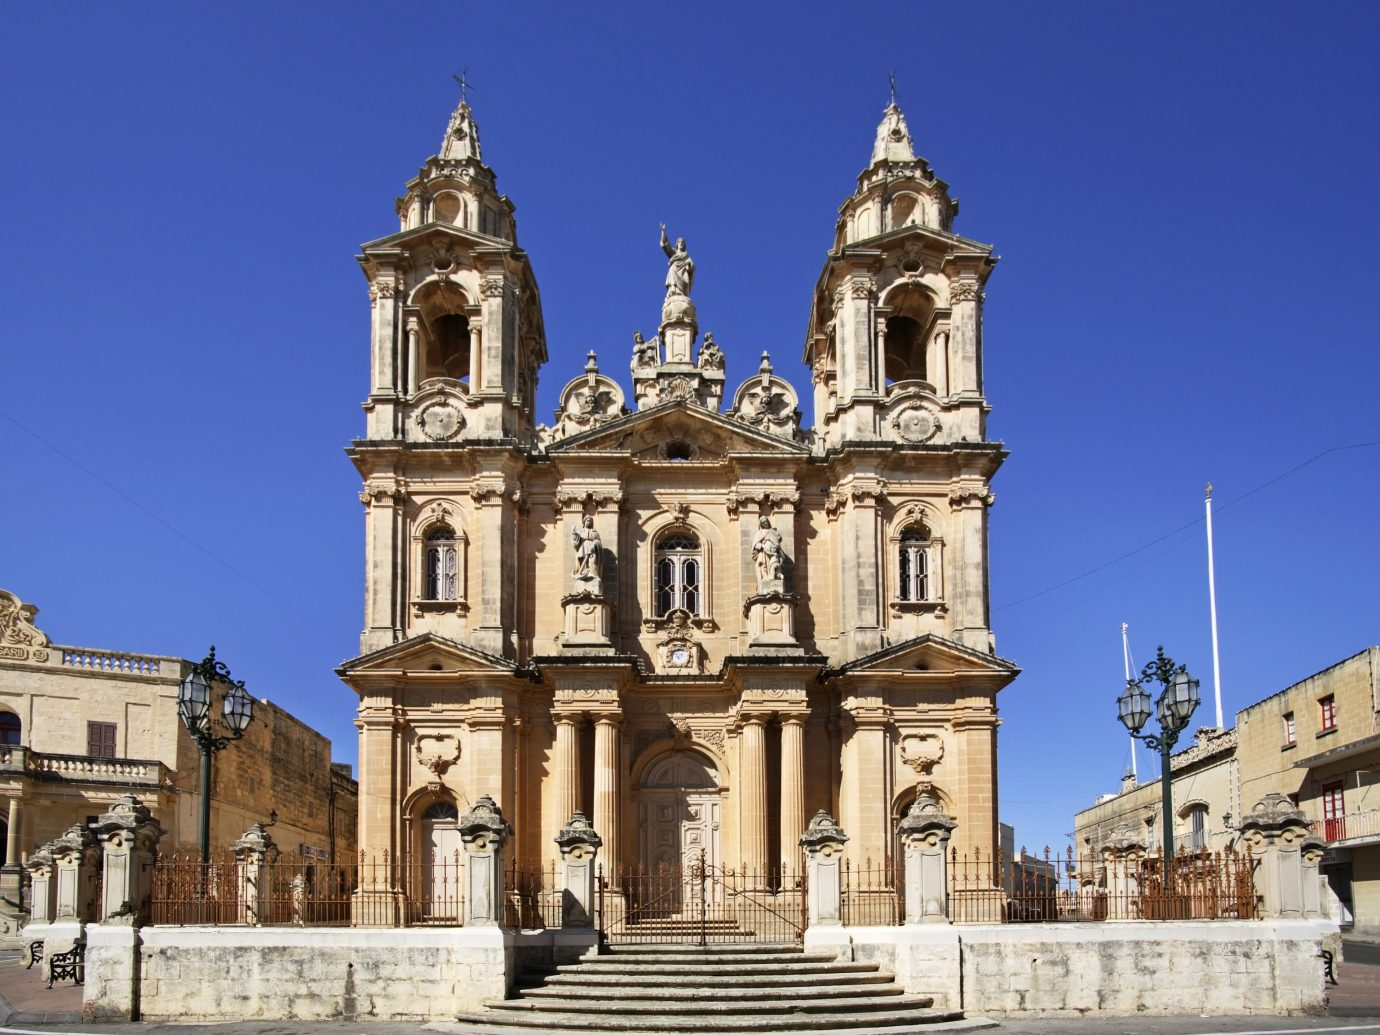 Trip Ideas outdoor sky landmark historic site building Architecture cathedral place of worship Church byzantine architecture basilica plaza facade ancient roman architecture ancient history bell tower monastery town square gothic architecture unesco world heritage site tower government building square